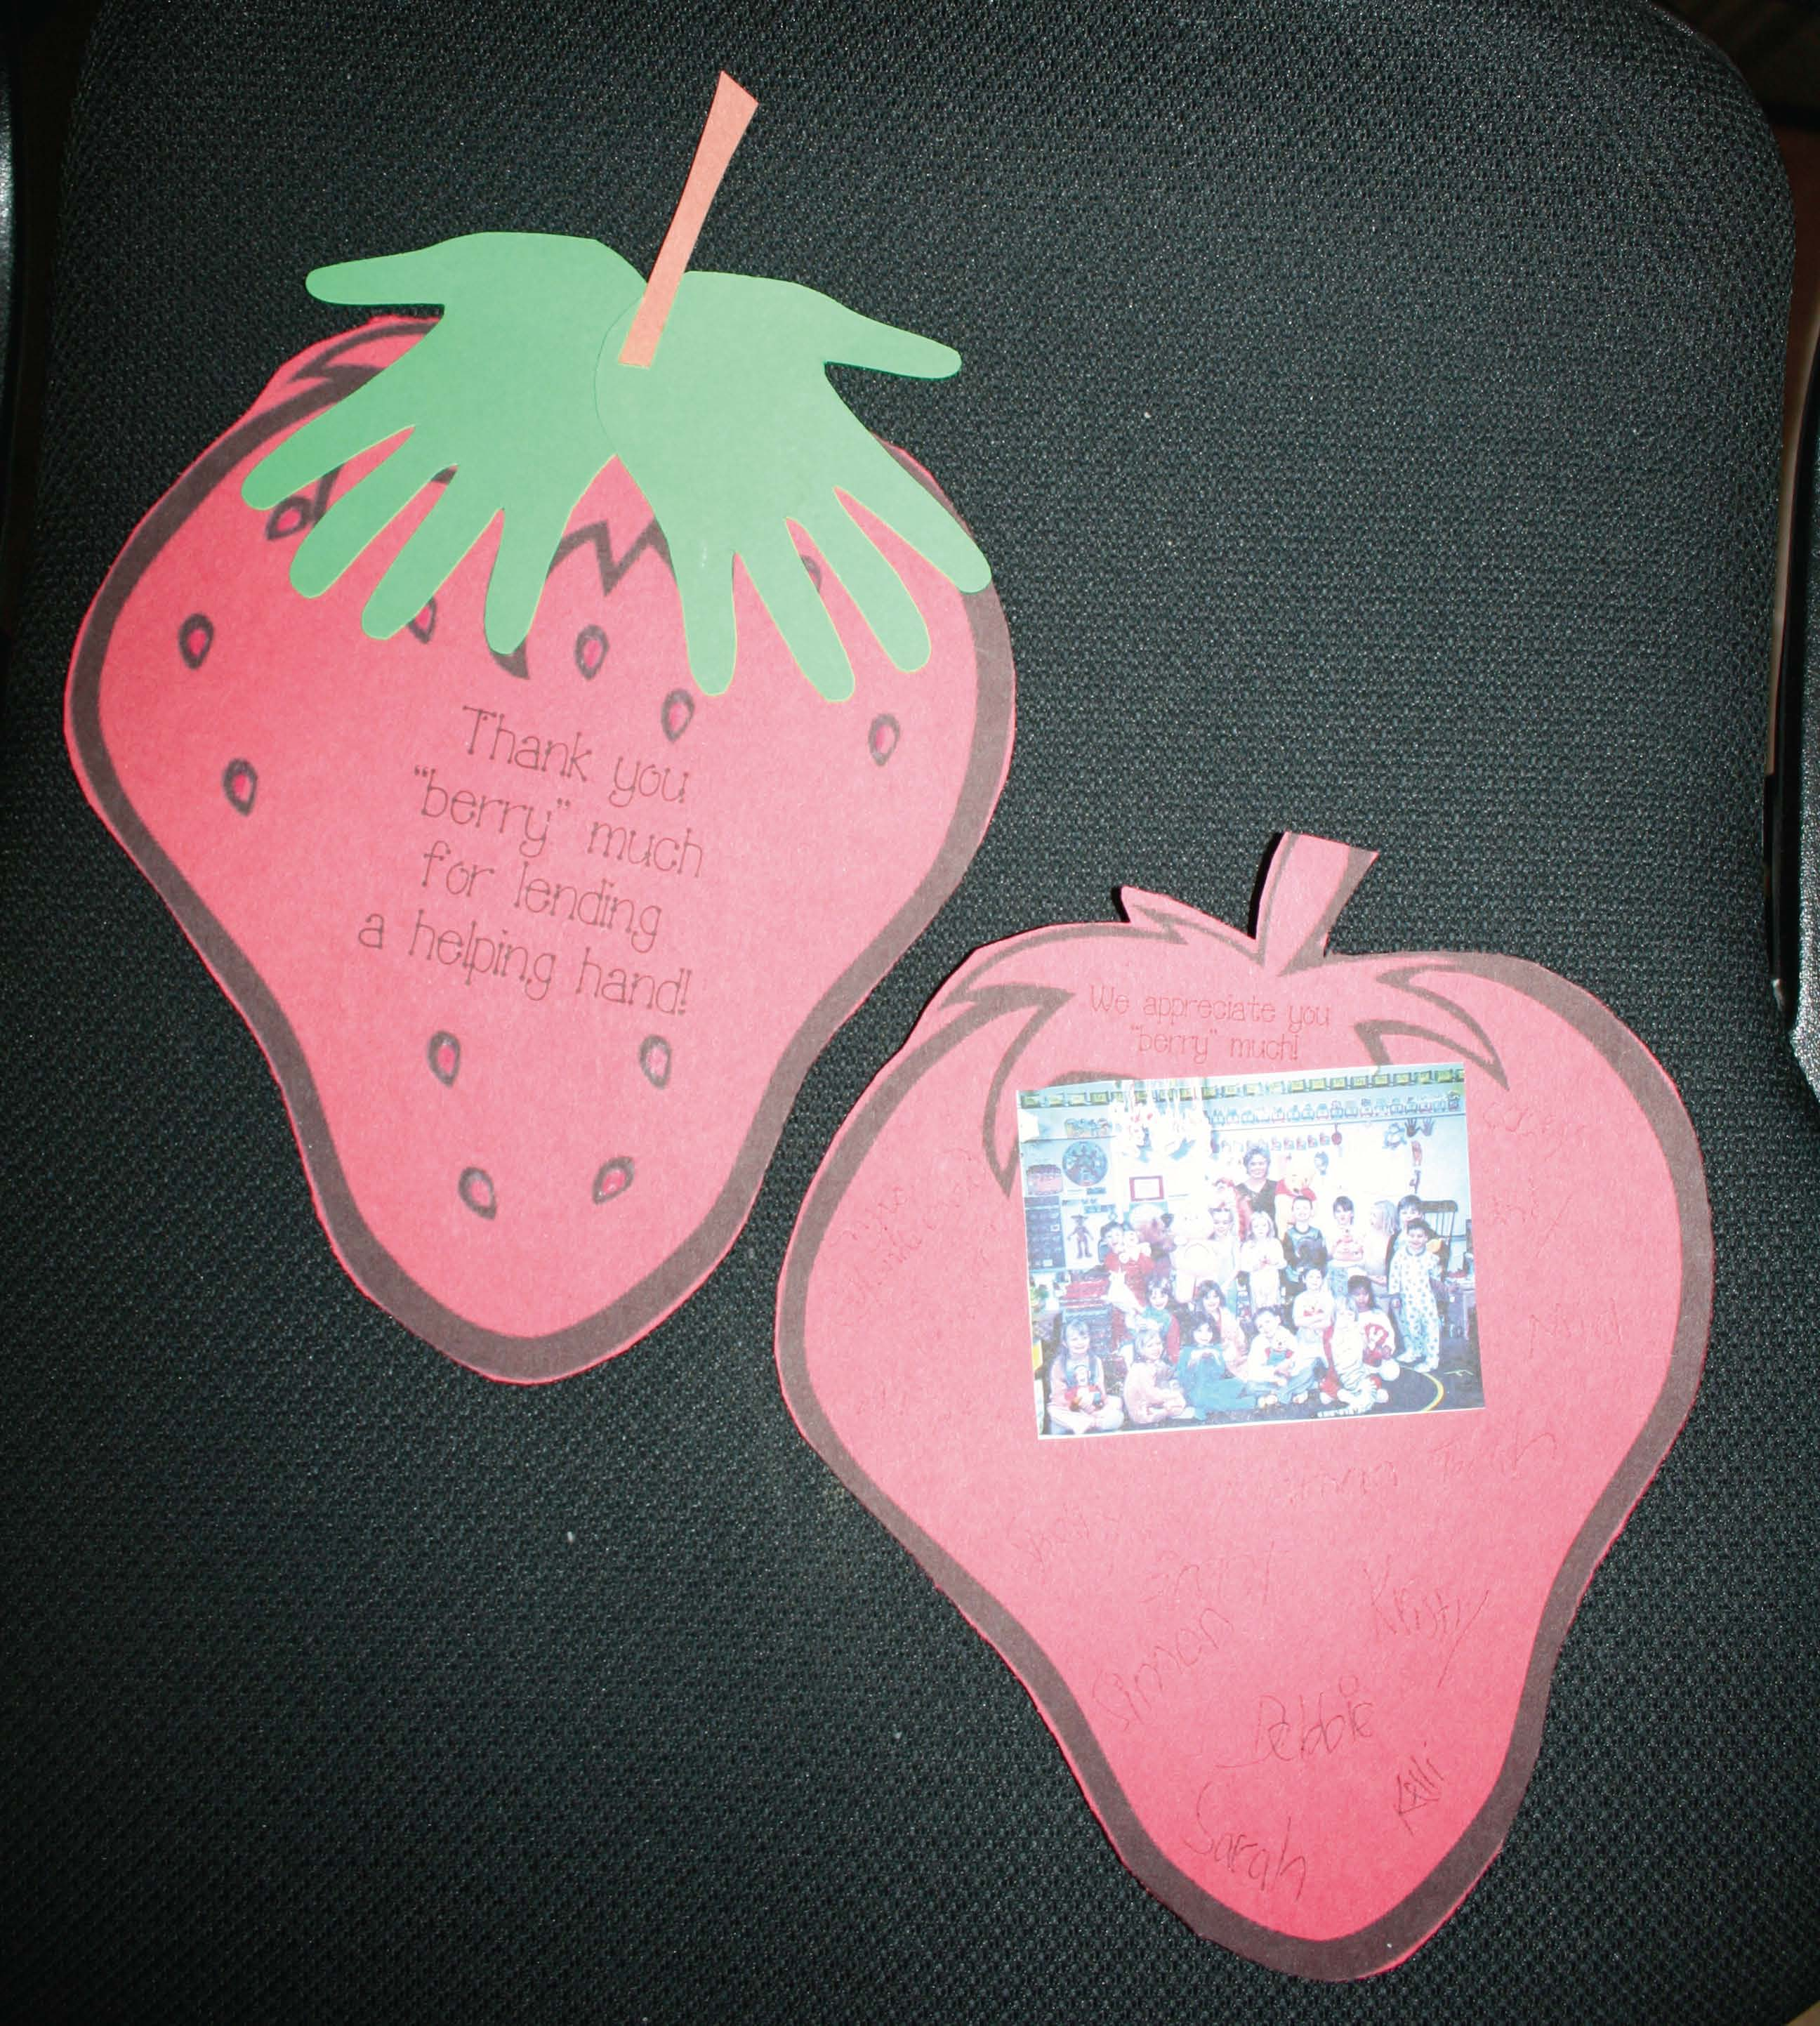 strawberry crafts, activities for the last week of school, activities for the last day of schoo, thank you cards for volunteers, thank you gifts for secretaries, thank you gifts for student teachers, mothers day activities, mothers day crafts, mothers day cards, fathers day cards, fathers day activites, fathers day gifts.